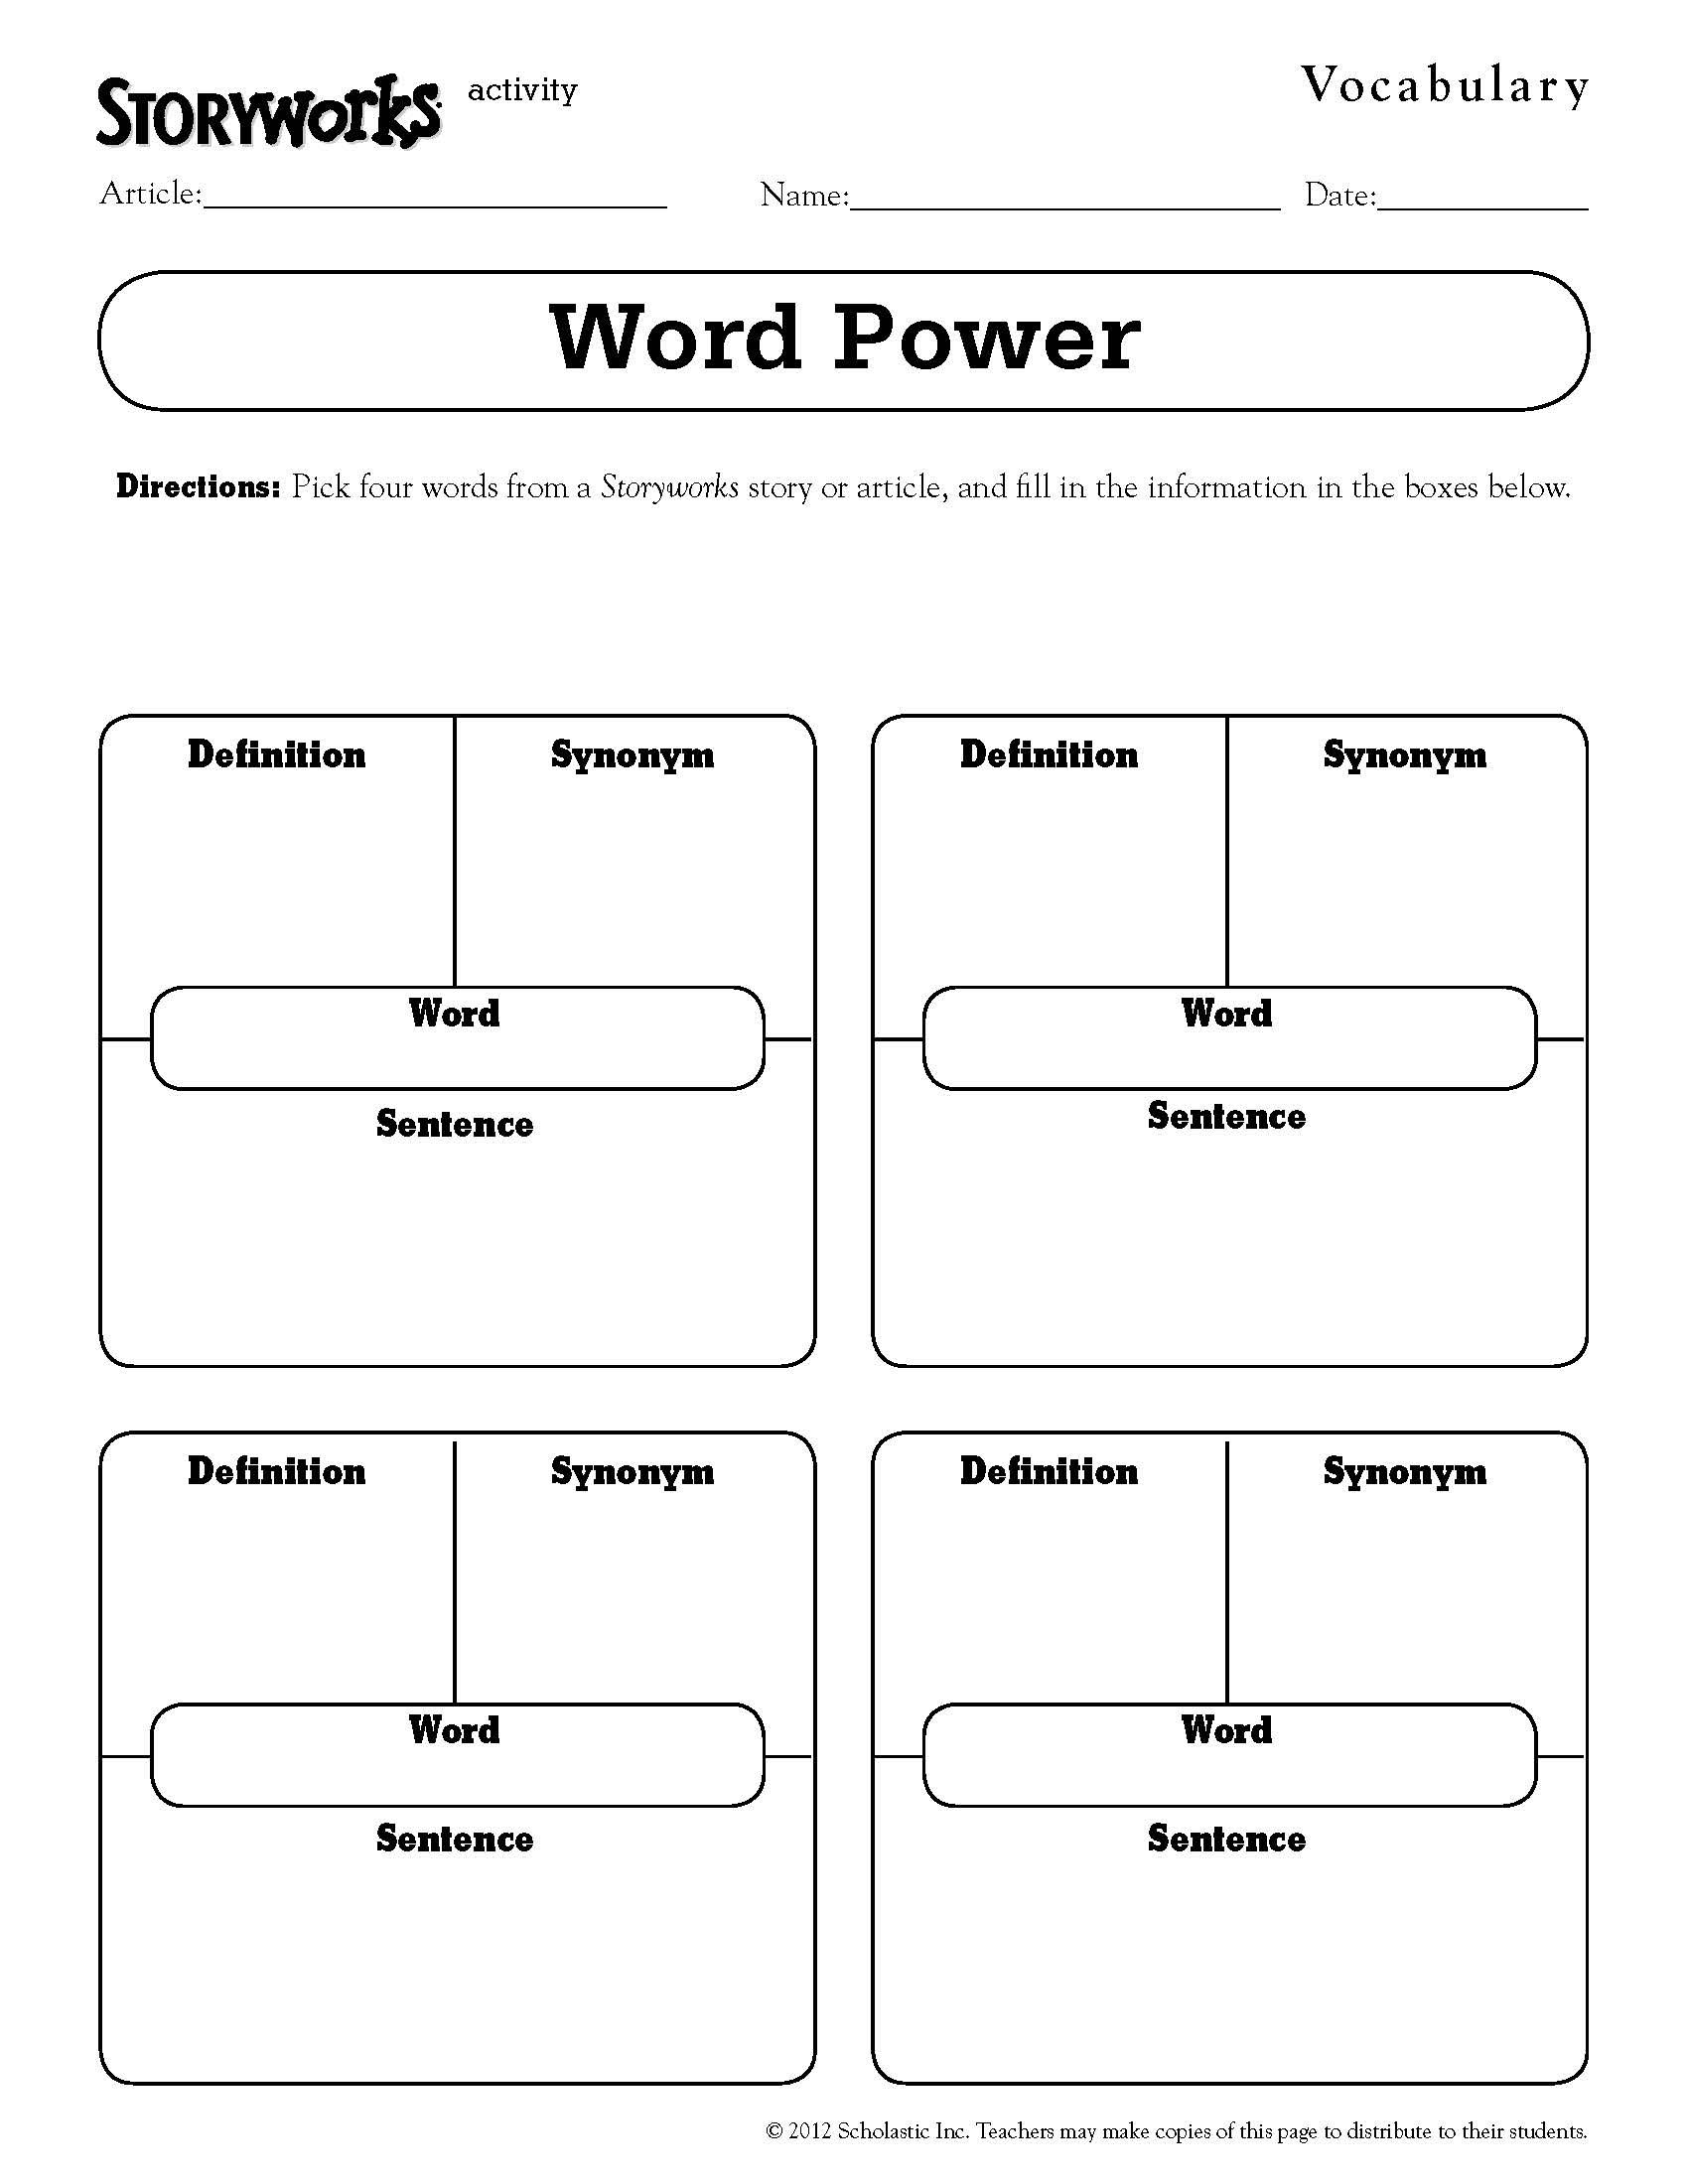 academic vocabulary in use pdf free